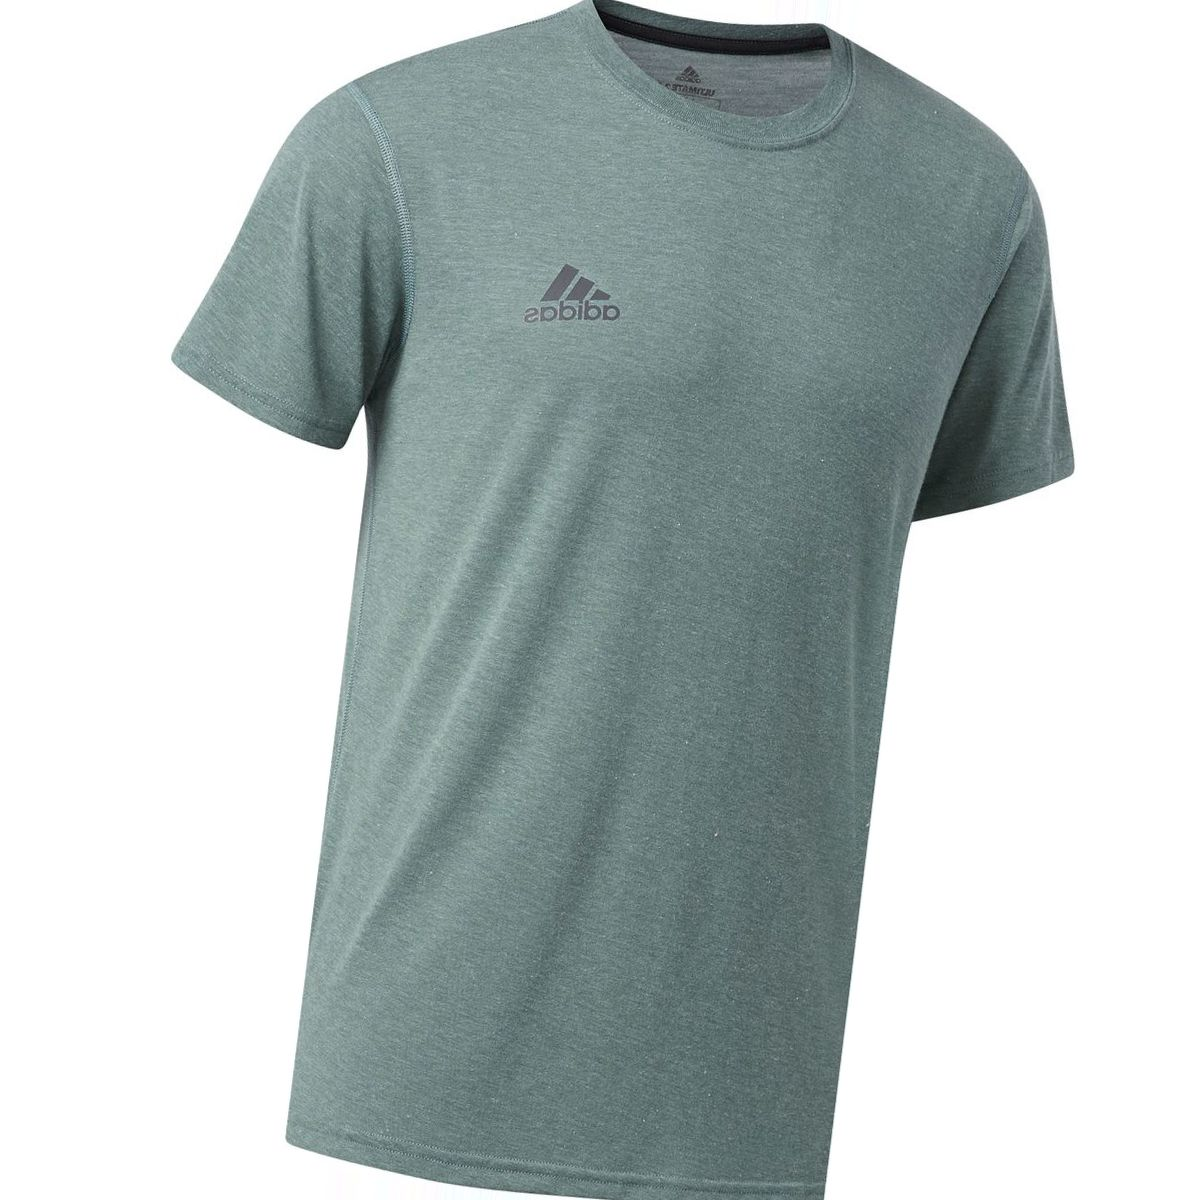 Adidas Outdoor Ultimate Short-Sleeve T-Shirt - Men's